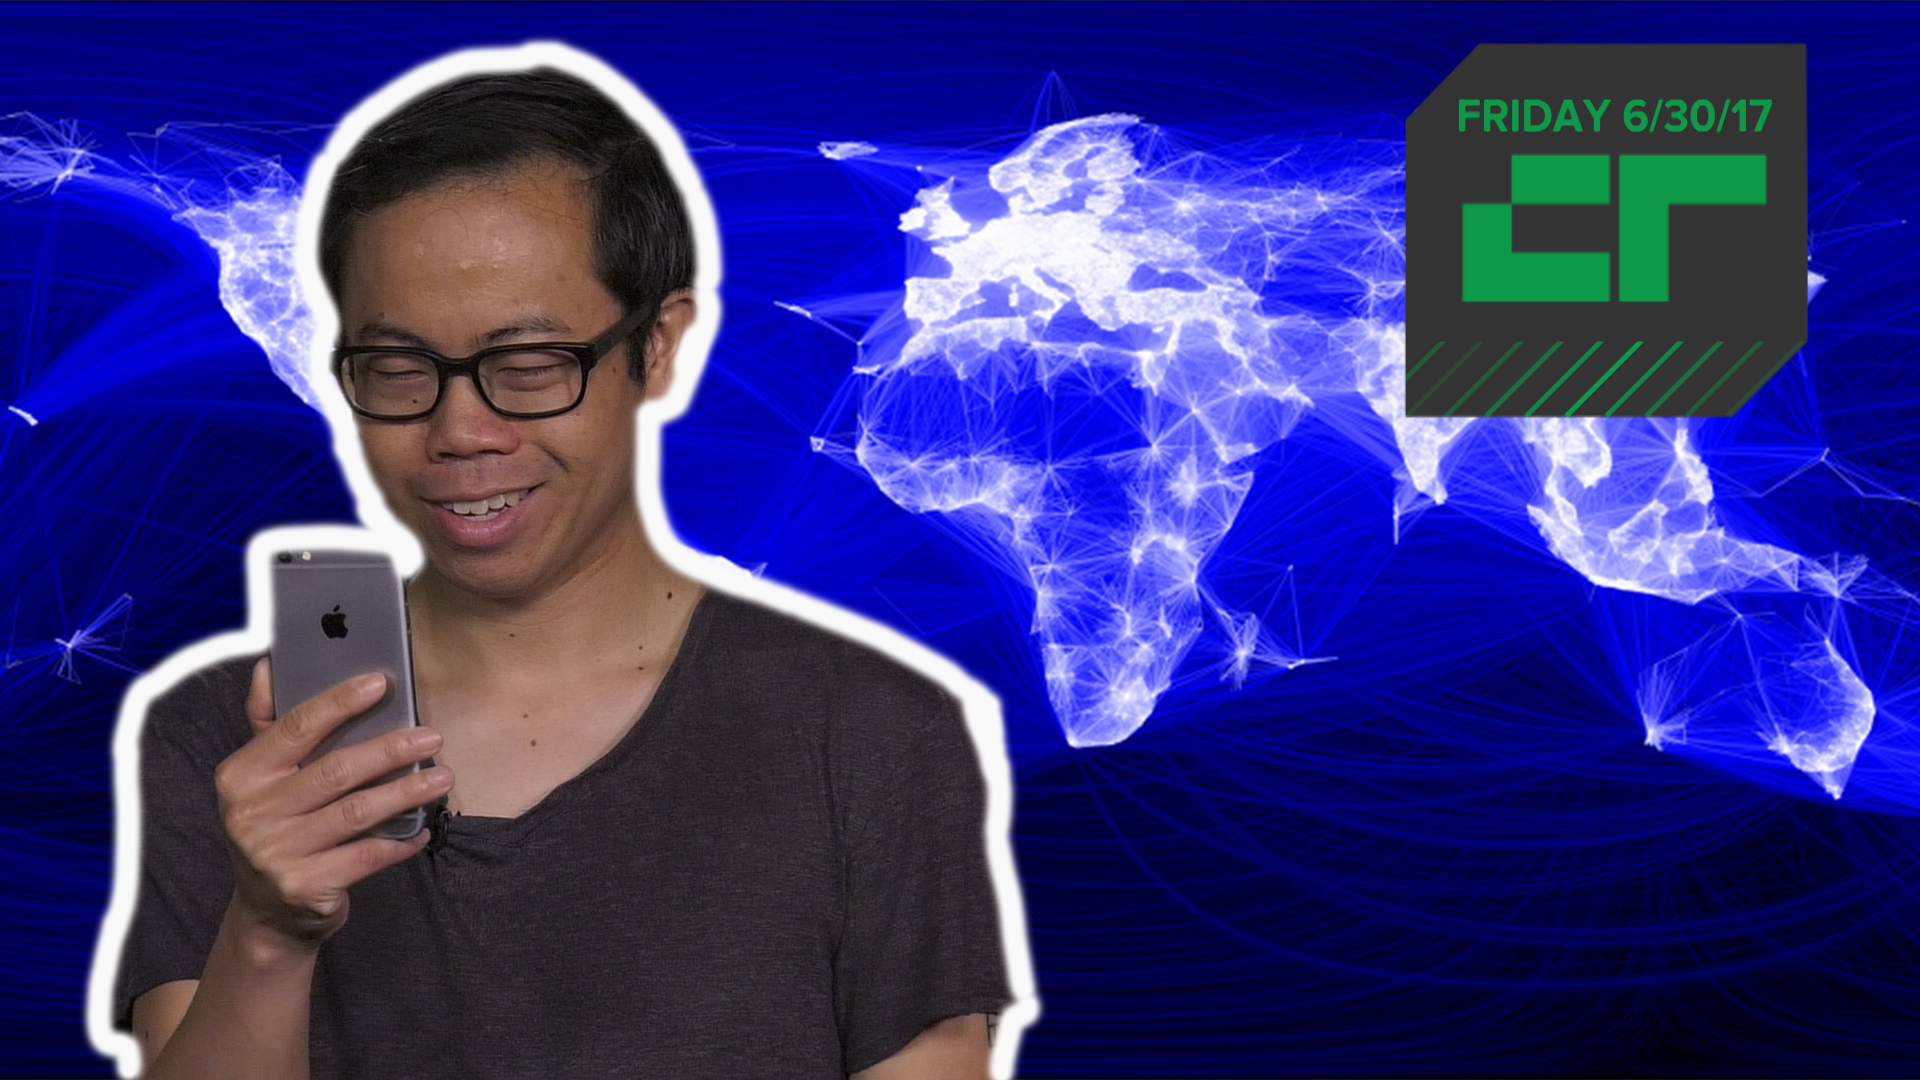 Facebook Helps You Find Wi-Fi | Crunch Report